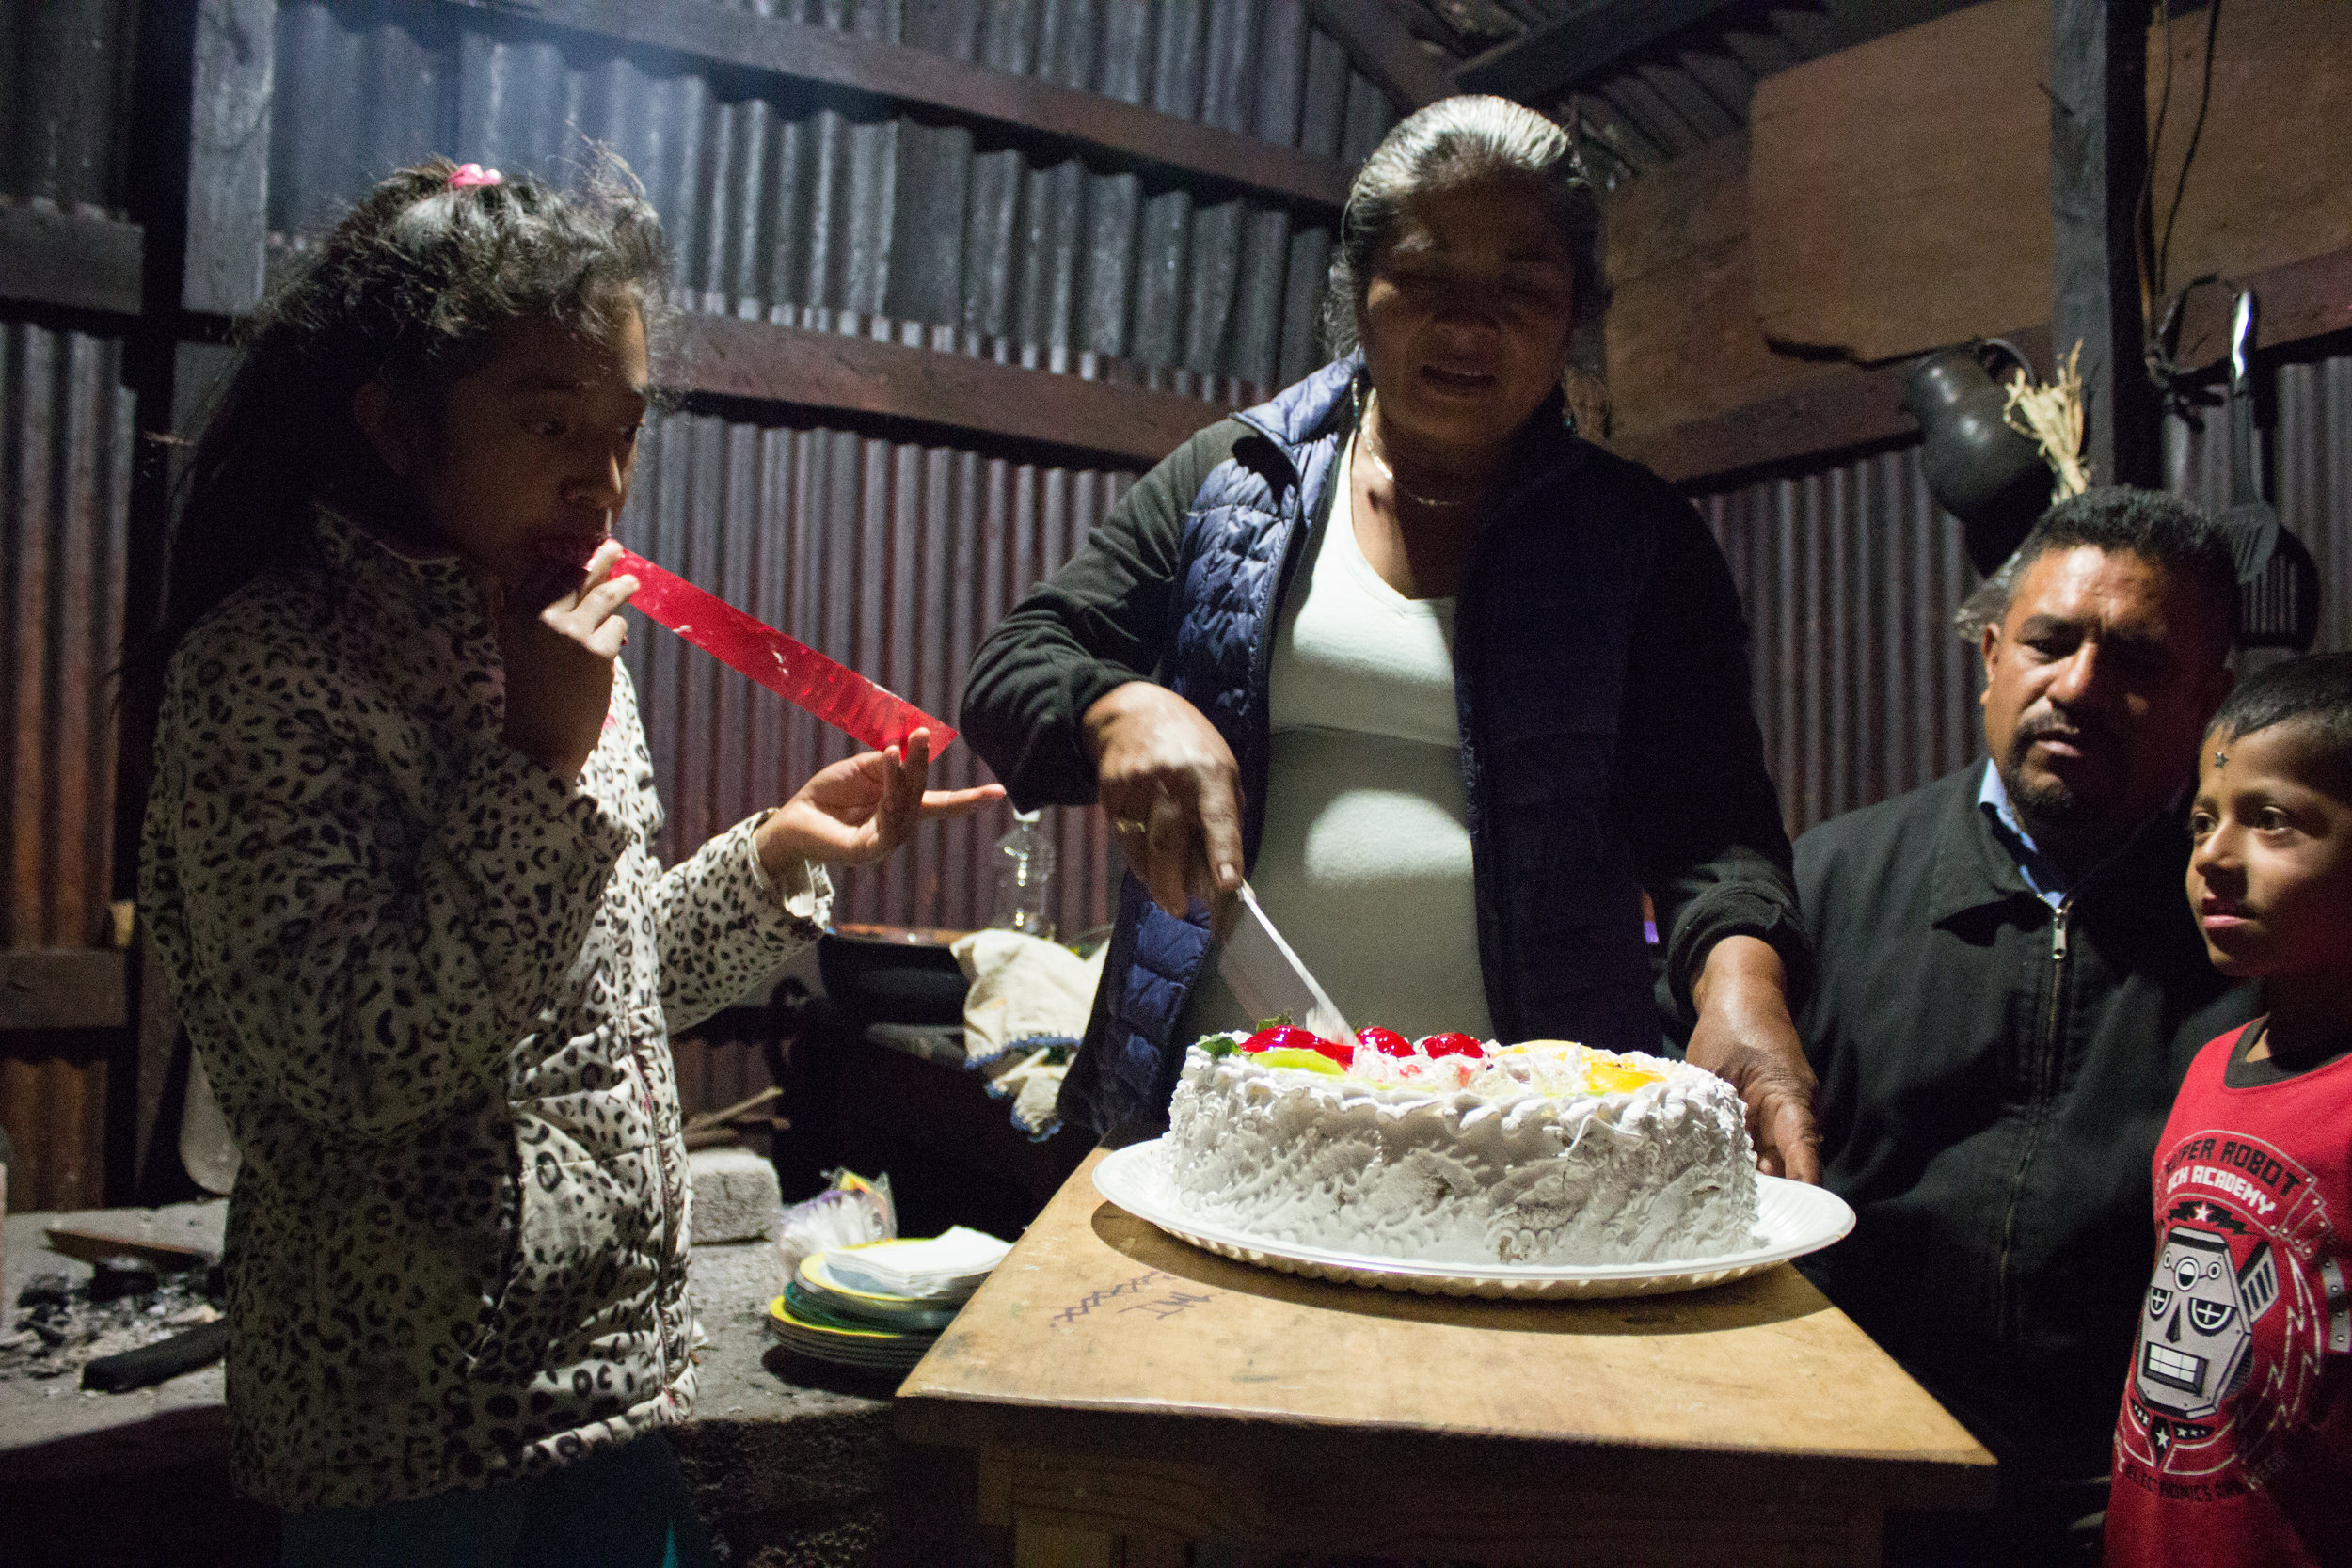 A birthday cake is served in Bernardita's kitchen for one of her daughters. It's our last night in Chapultepec.